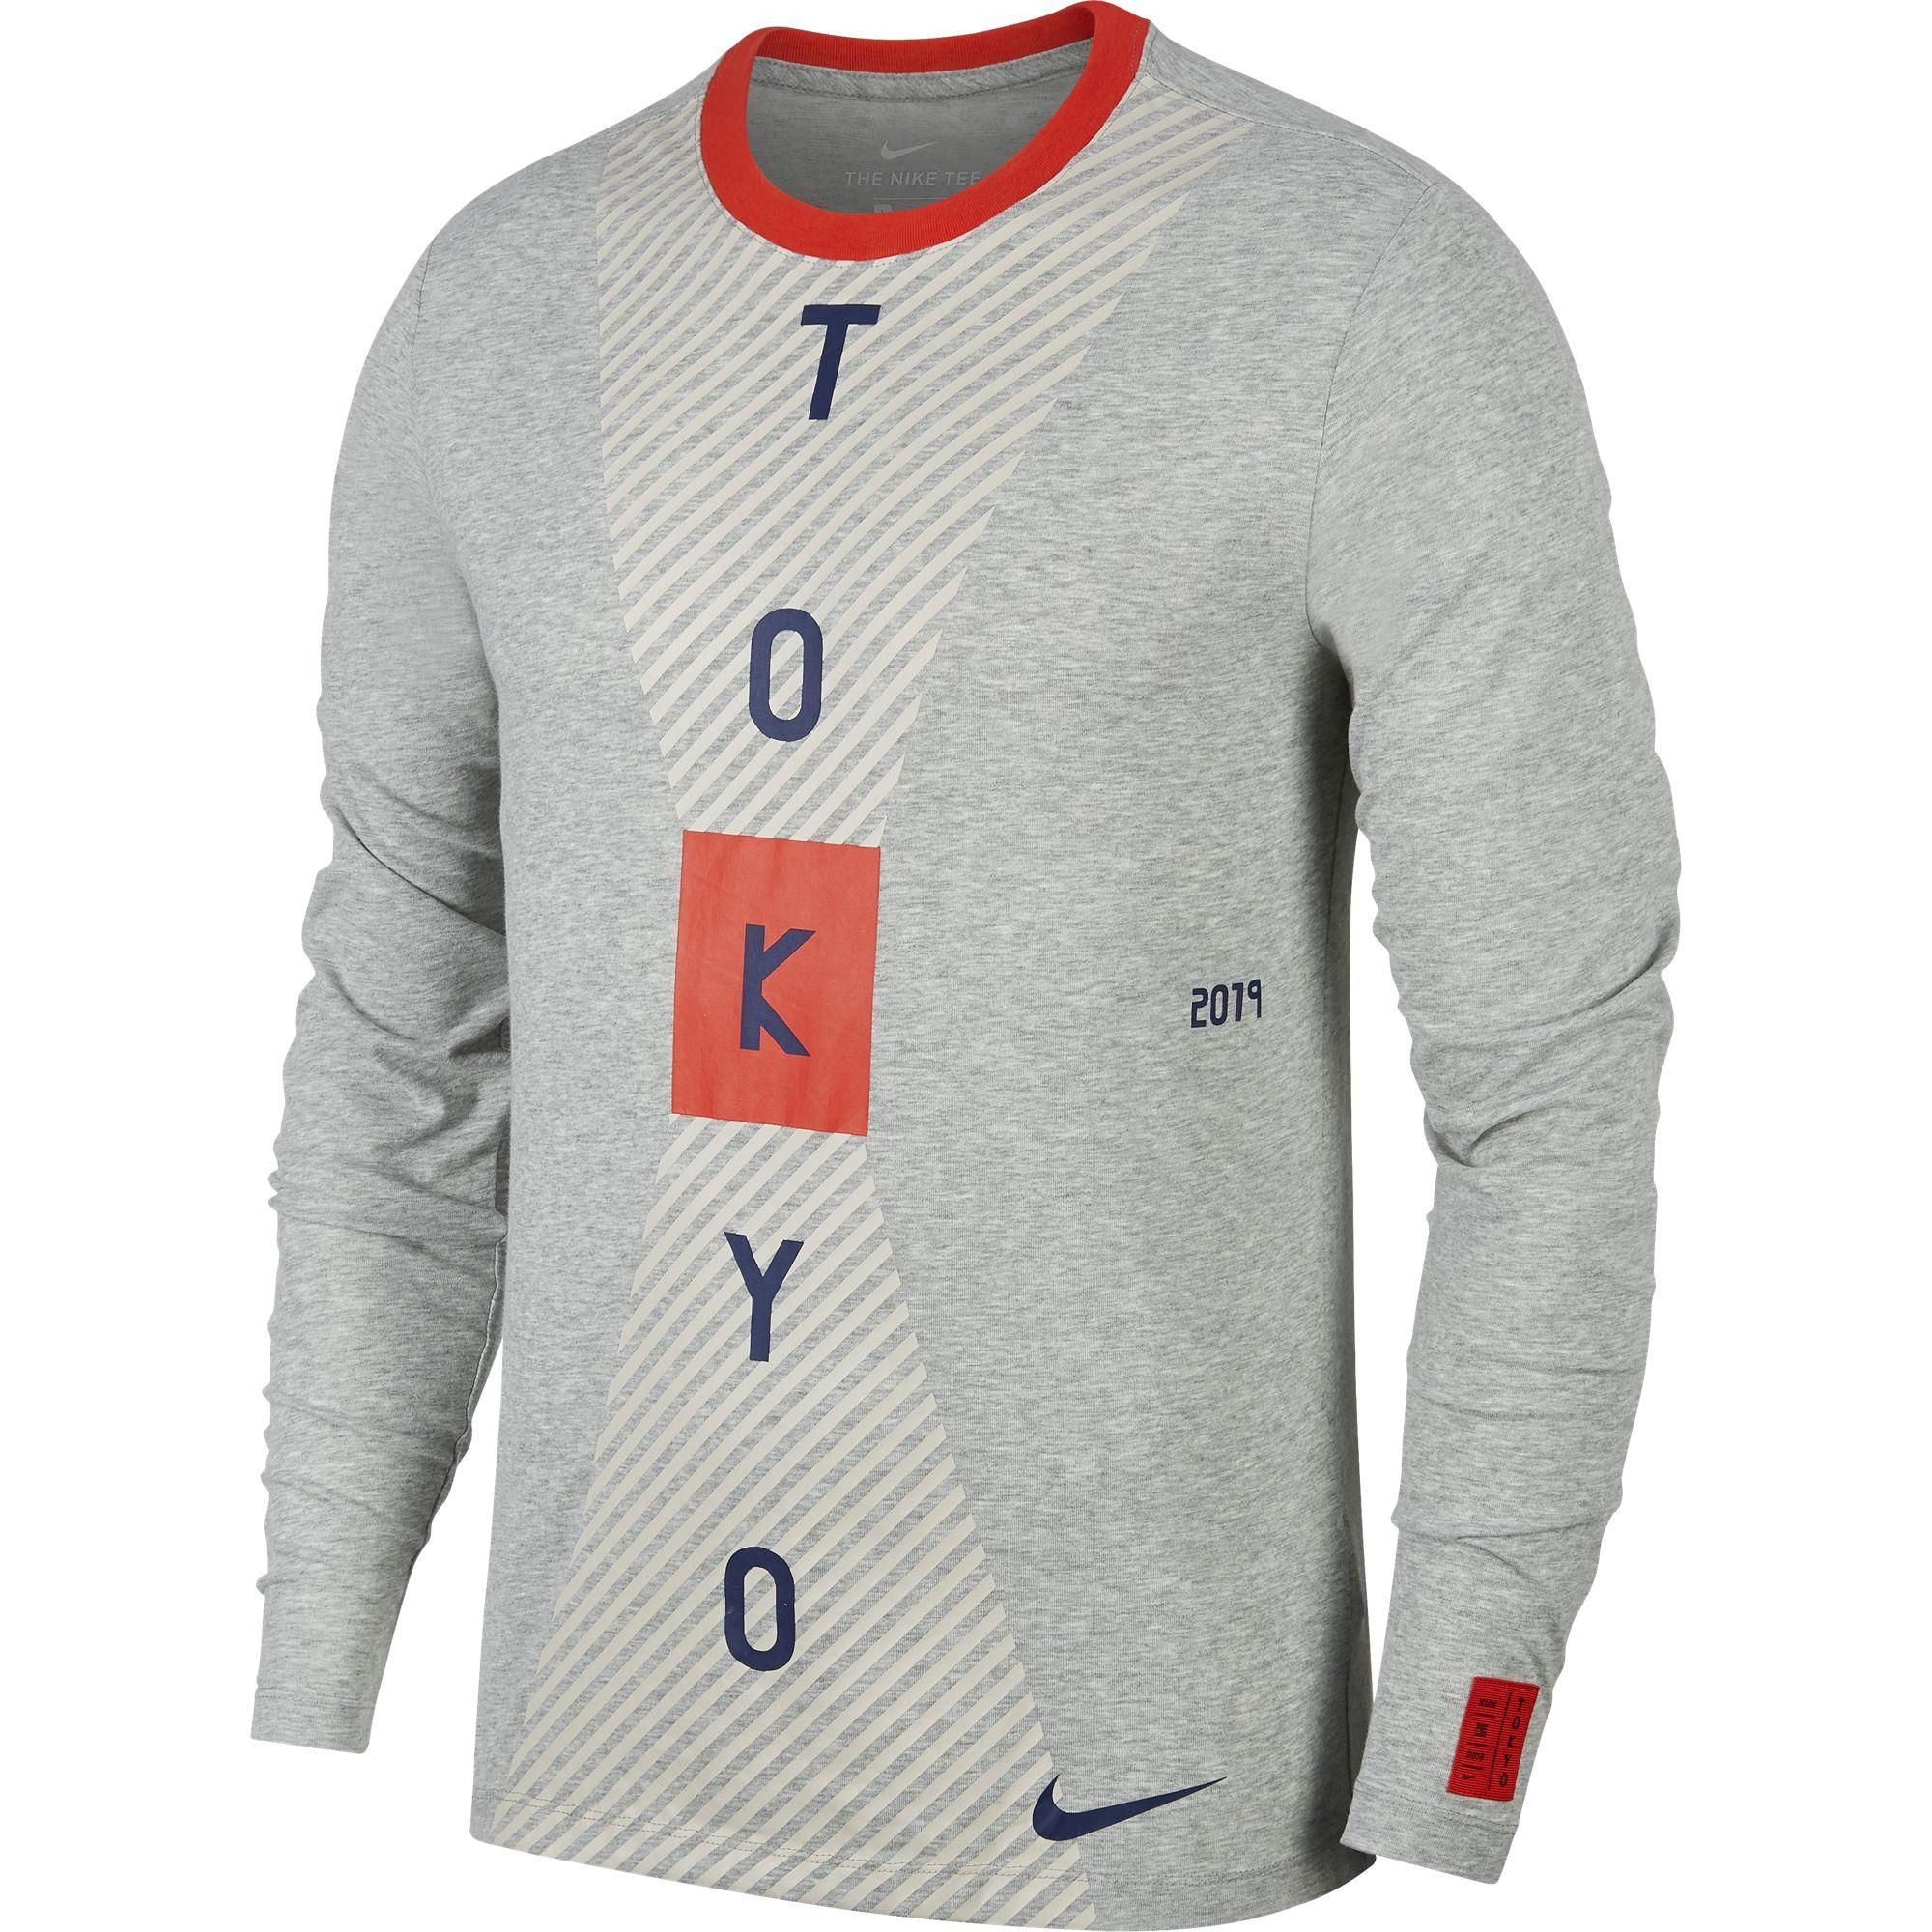 Nike Maillot Dry Fit  Tokyo